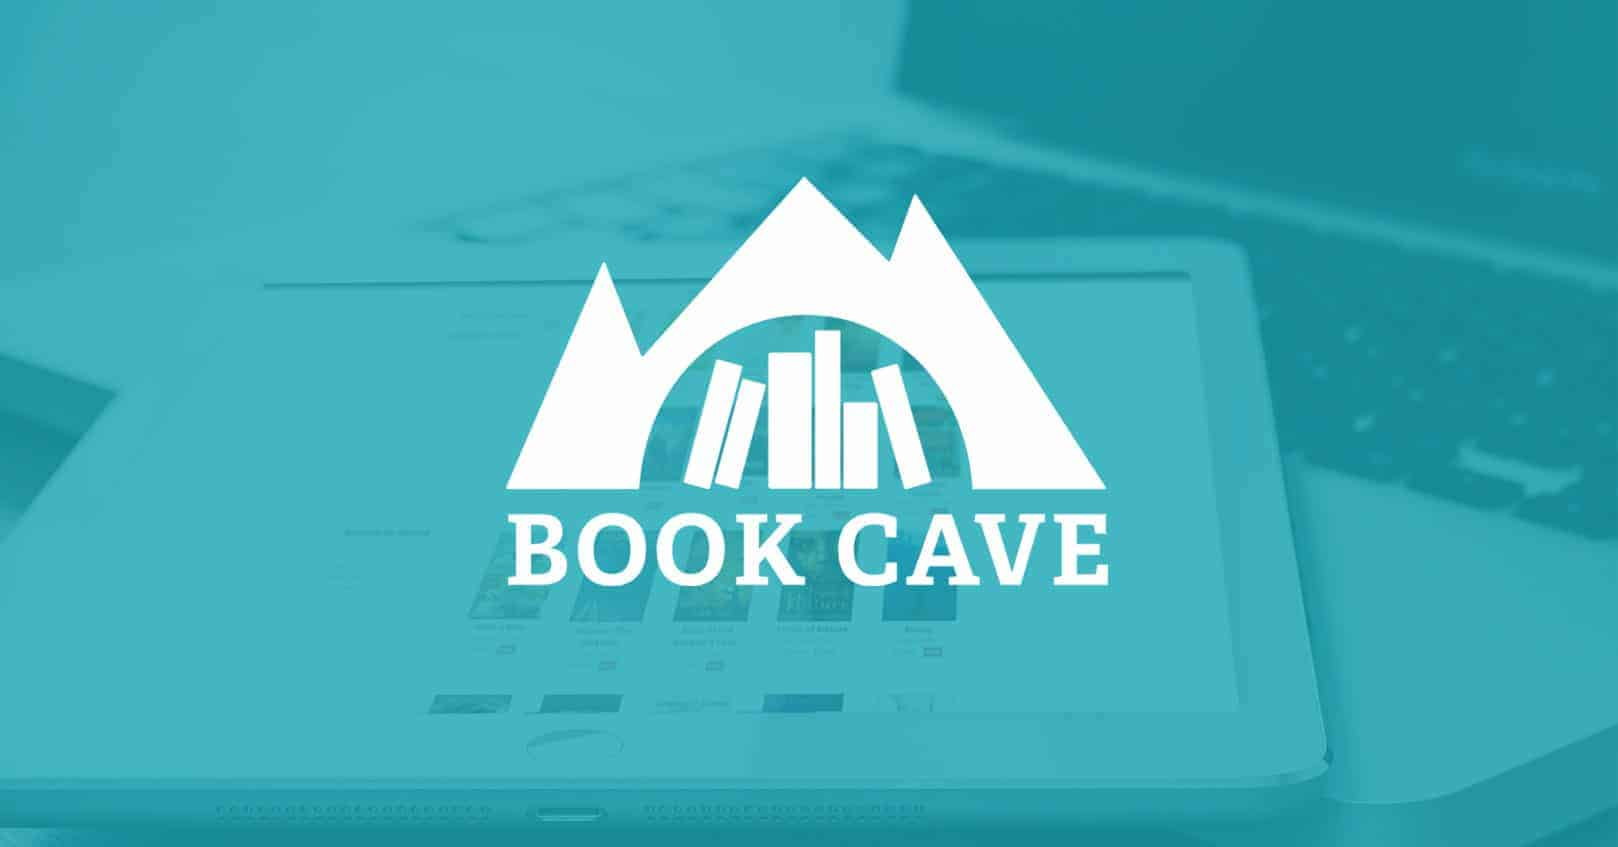 Book Cave Free Ebooks